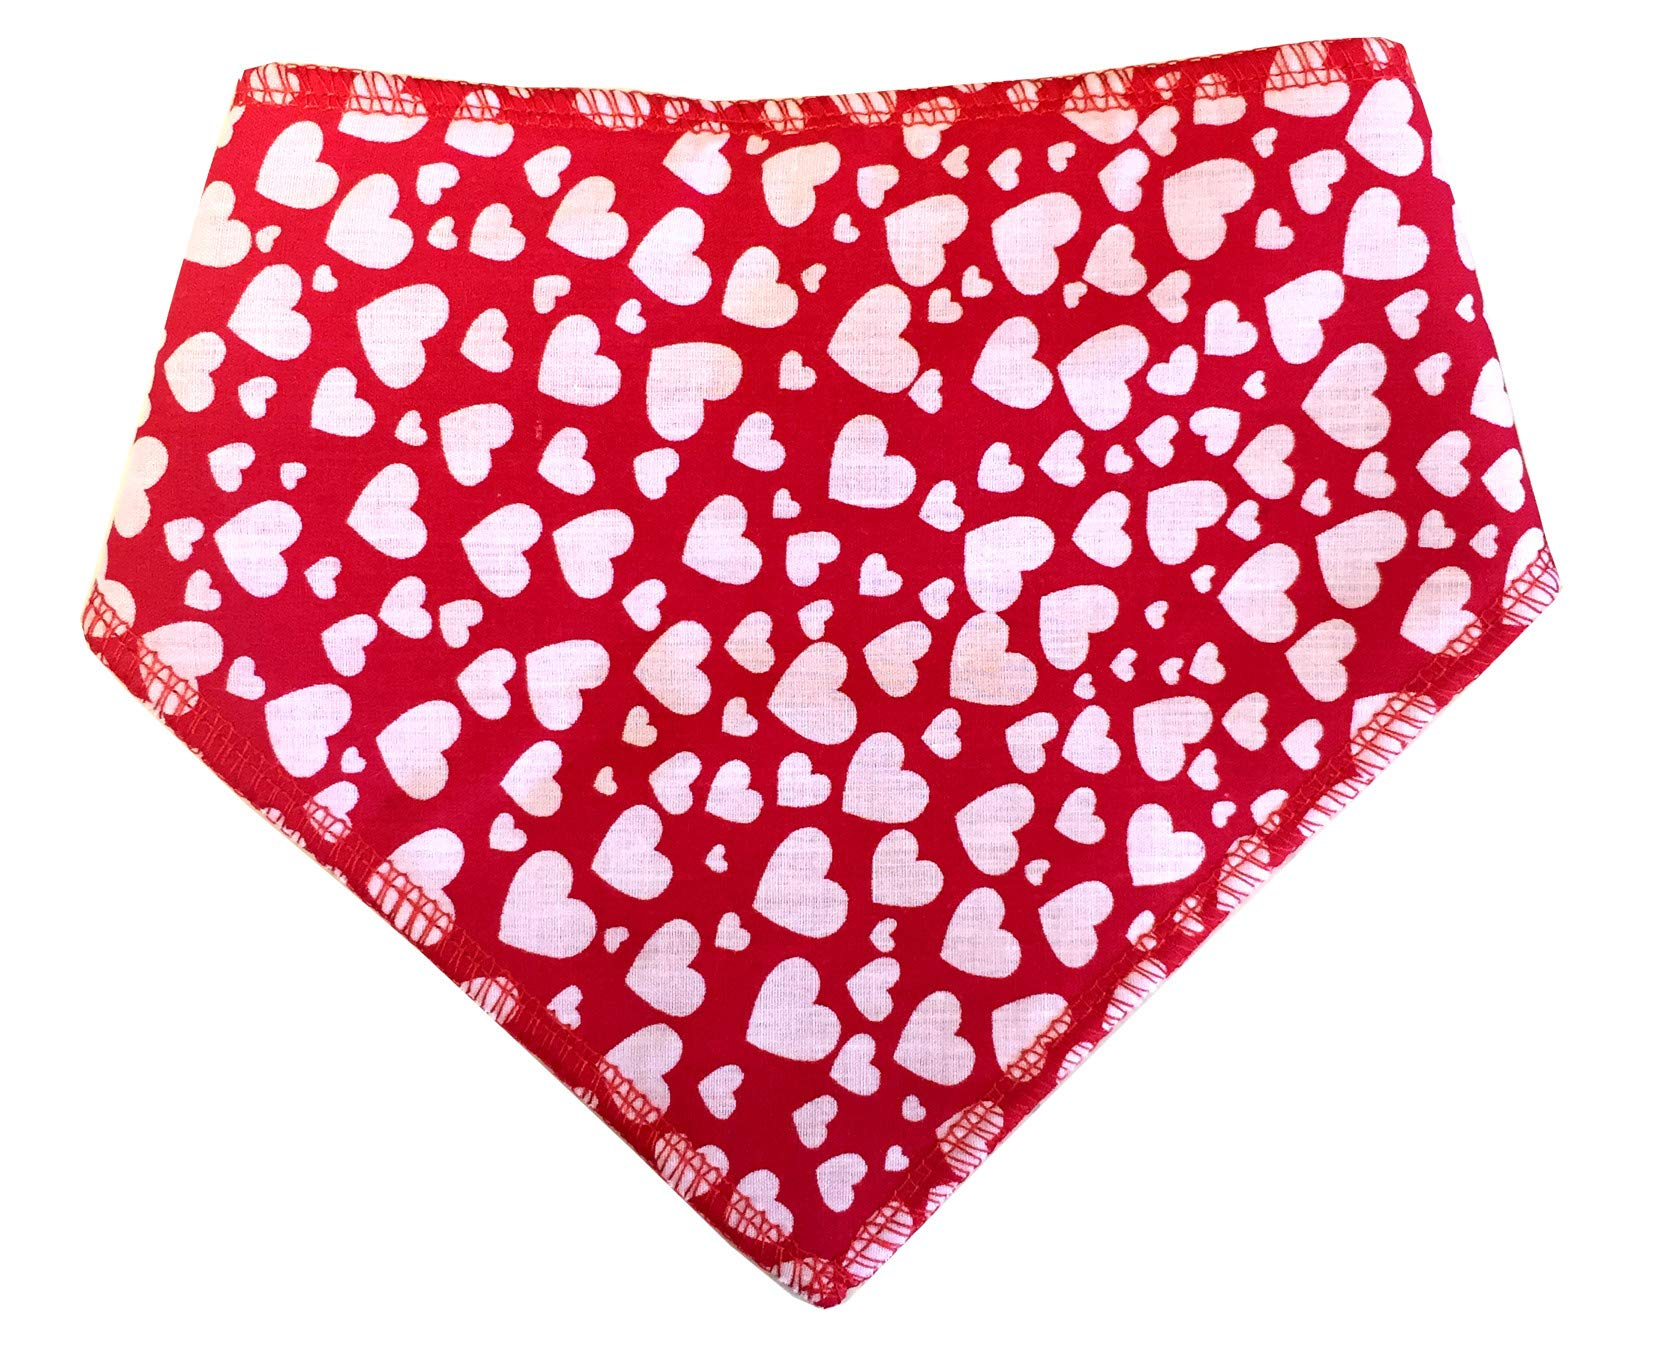 Spoilt Rotten Pets (S4) Branded Red & White Hearts Dog Bandana Adjustable Neck to Fit Large to Extra/Large Dogs – Neck Size 23″ – 28″ Generally Fits Chow Chow, German Shepherd, St Bernard, Dogue de Bordeaux and Similar Sized Dogs.